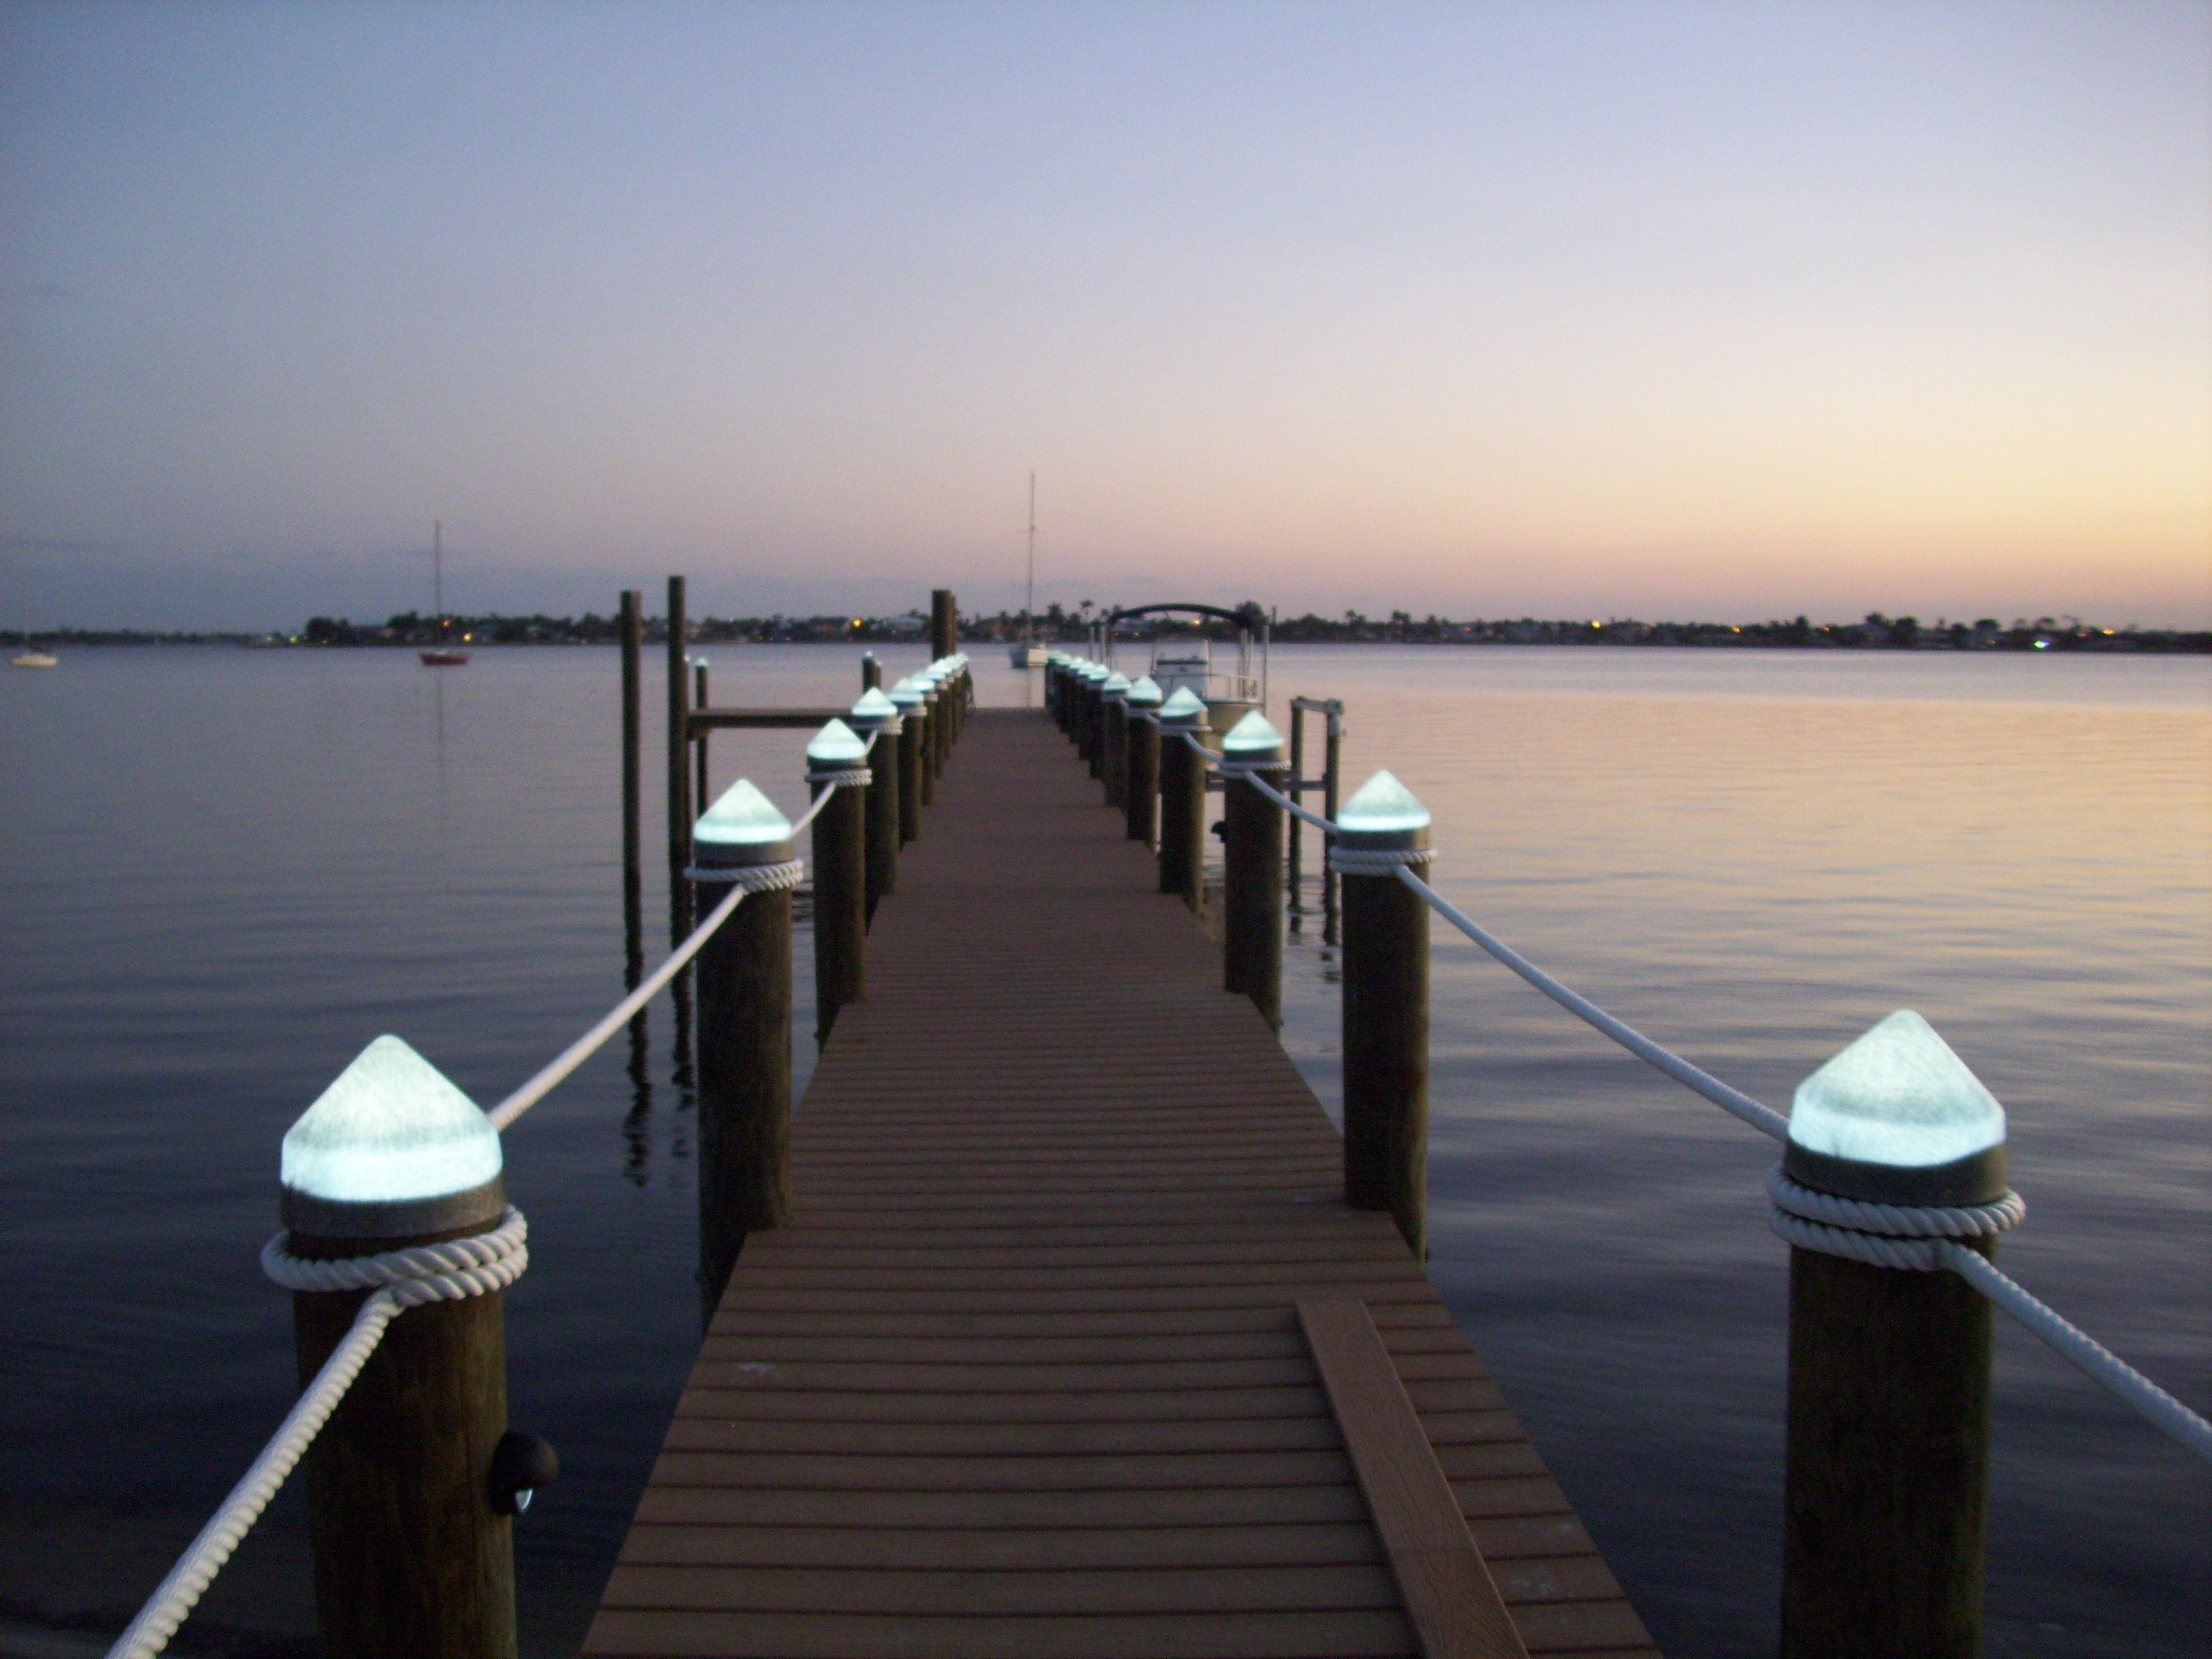 Pin By Benfive Lighting On LED Dock Lighting Pinterest